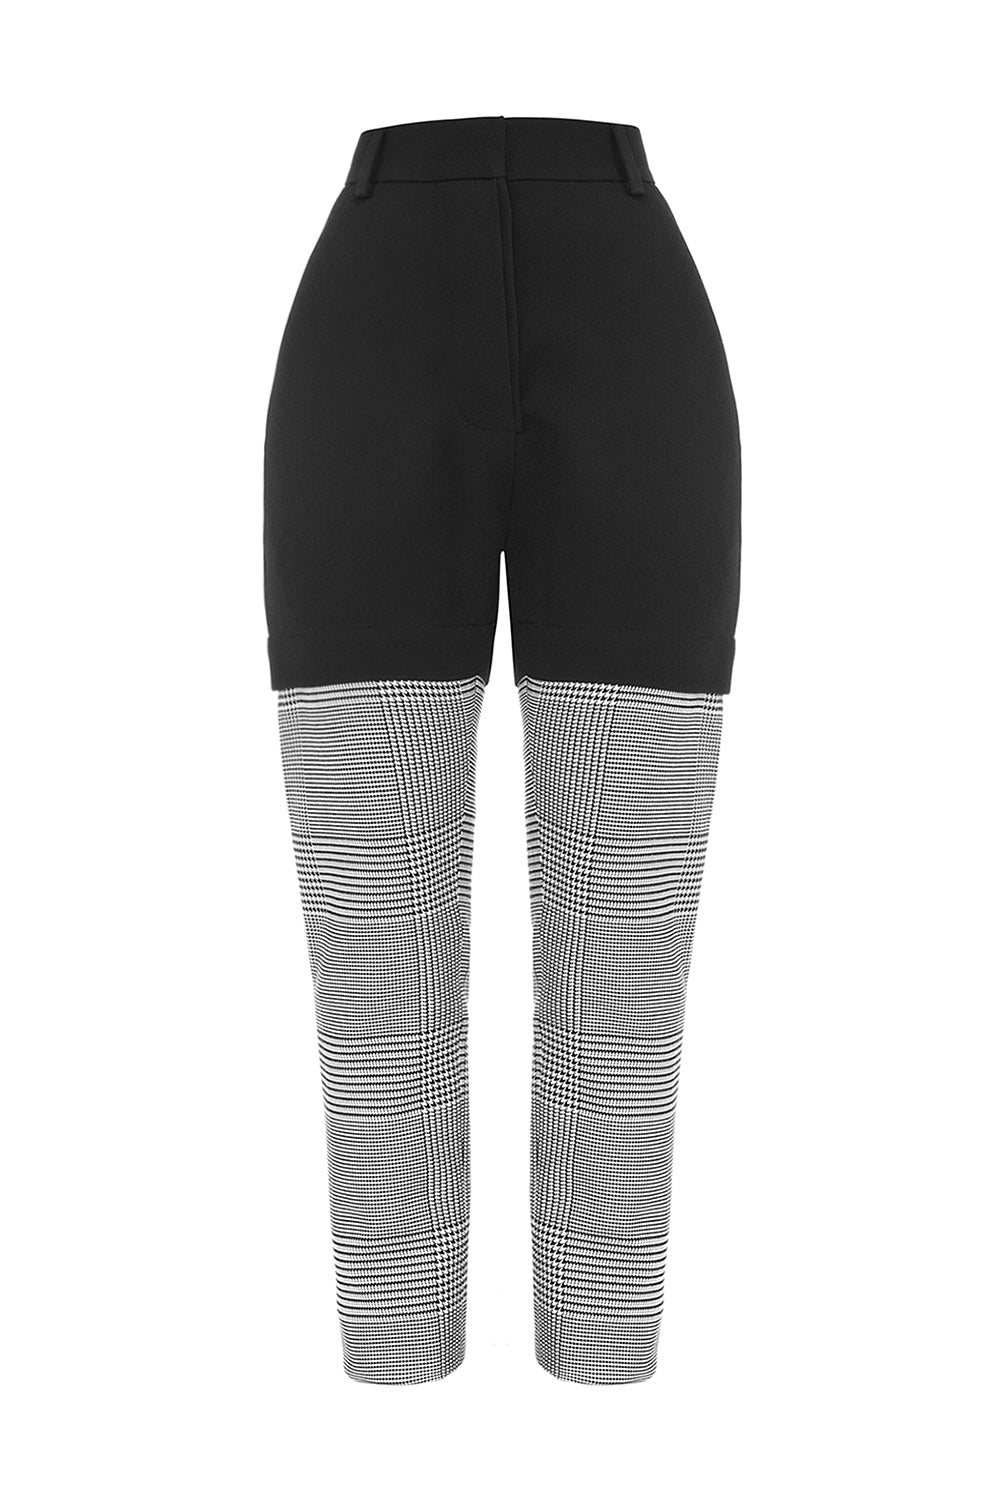 Black and Grey Pants